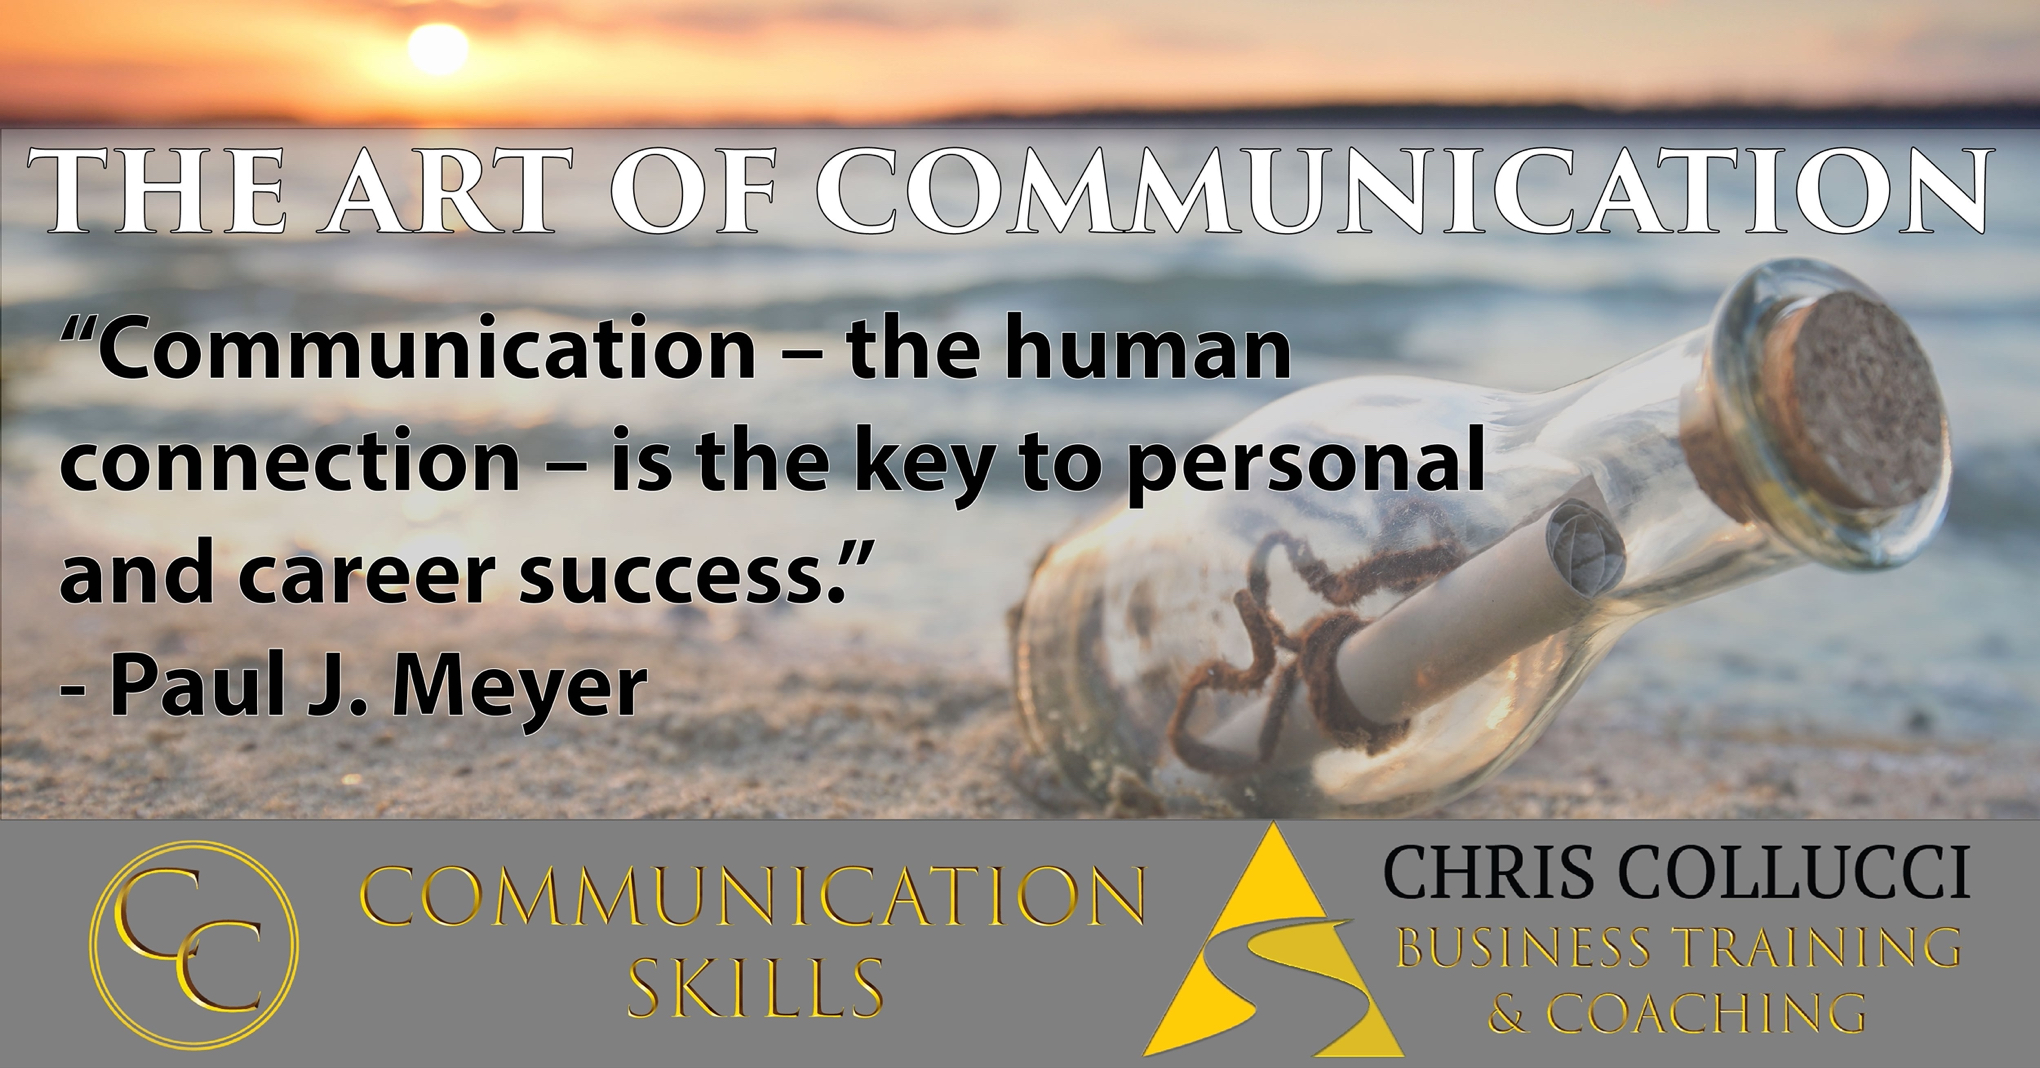 inspirational quote from Paul J. Meyer communication - the human connection - is the key to personal and career success